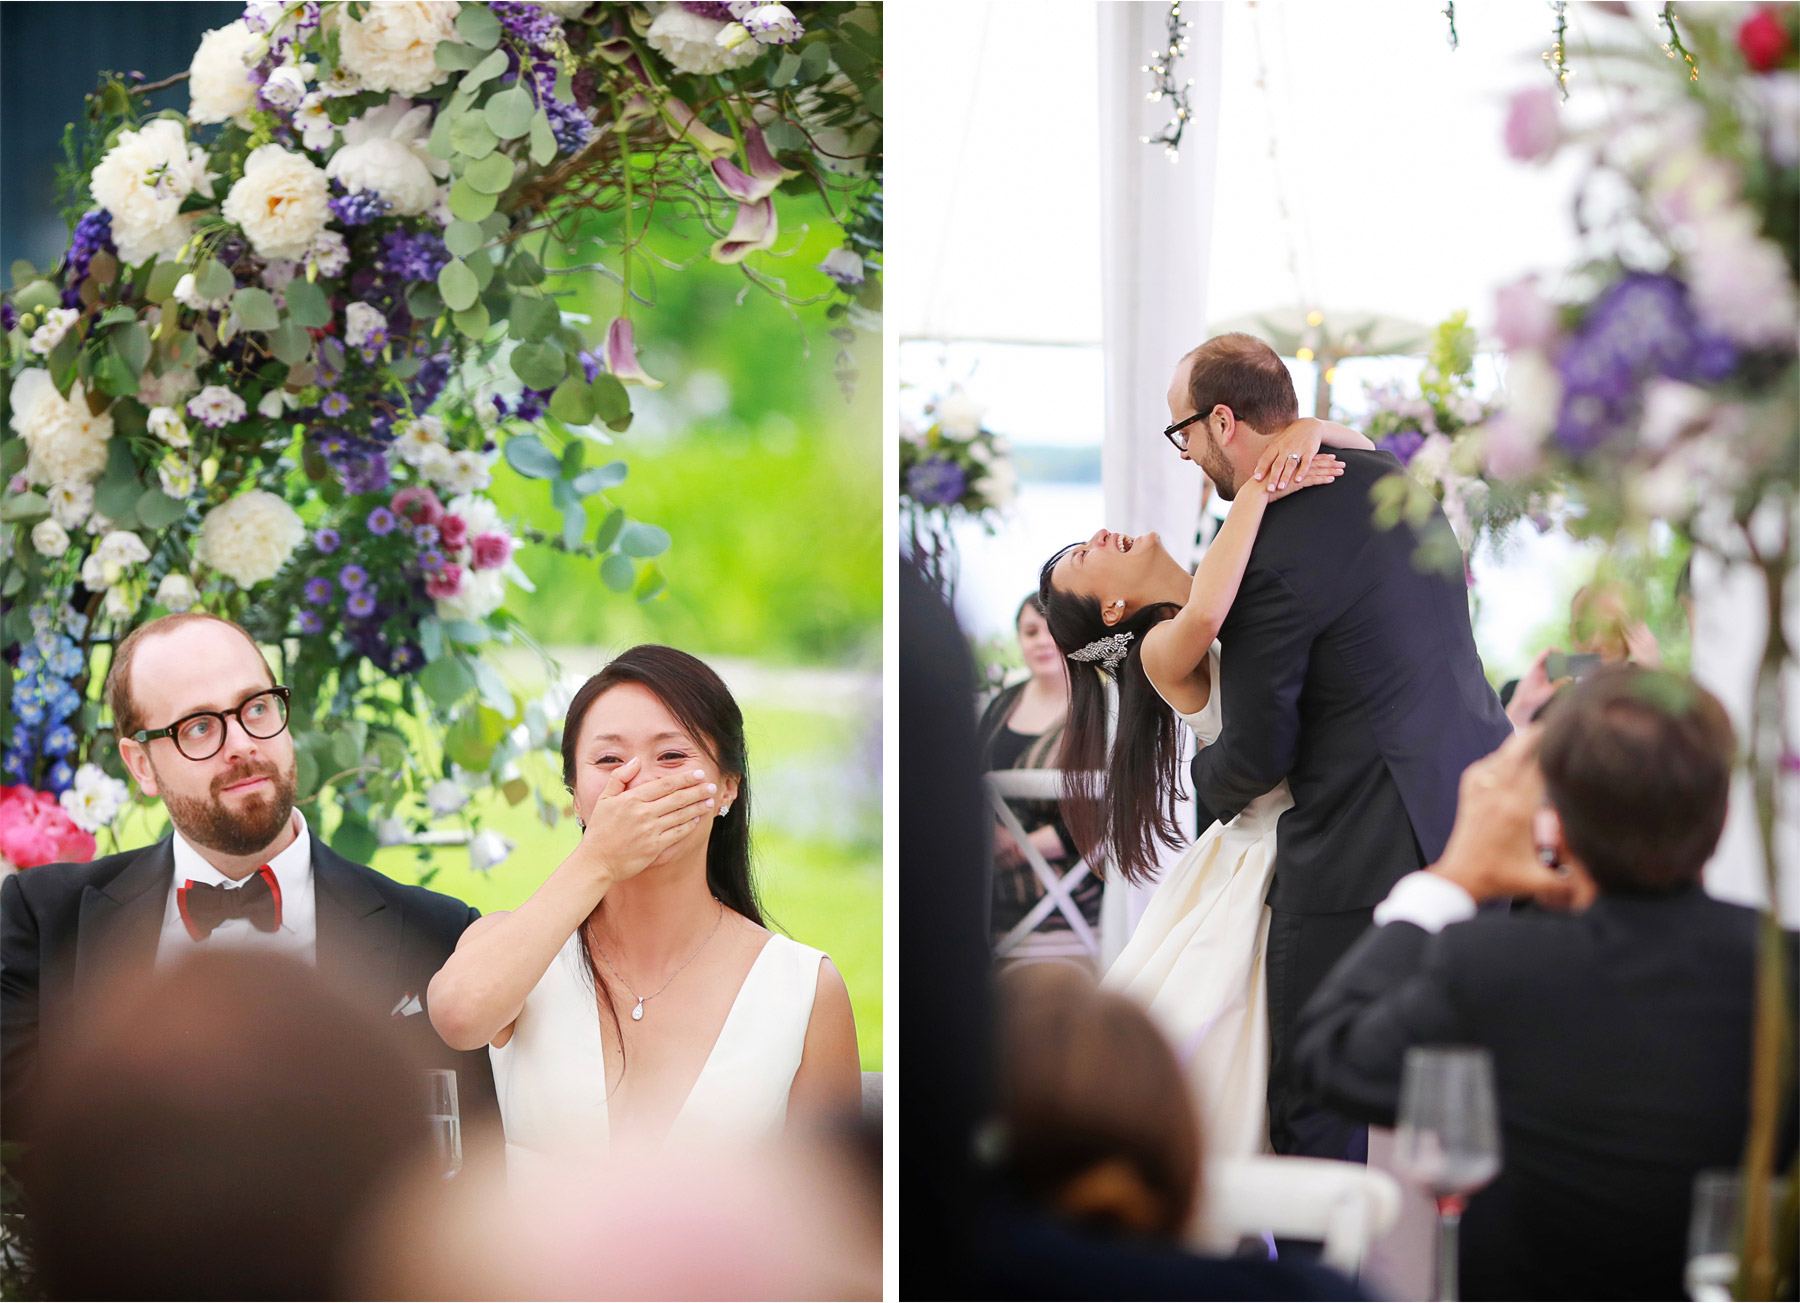 22-Vick-Photography-Wedding-Stouts-Island-Lodge-Wisconsin-Summer-Reception-Outdoor-Laughing-Bride-First-Dance-MiJa-and-Lucius.jpg